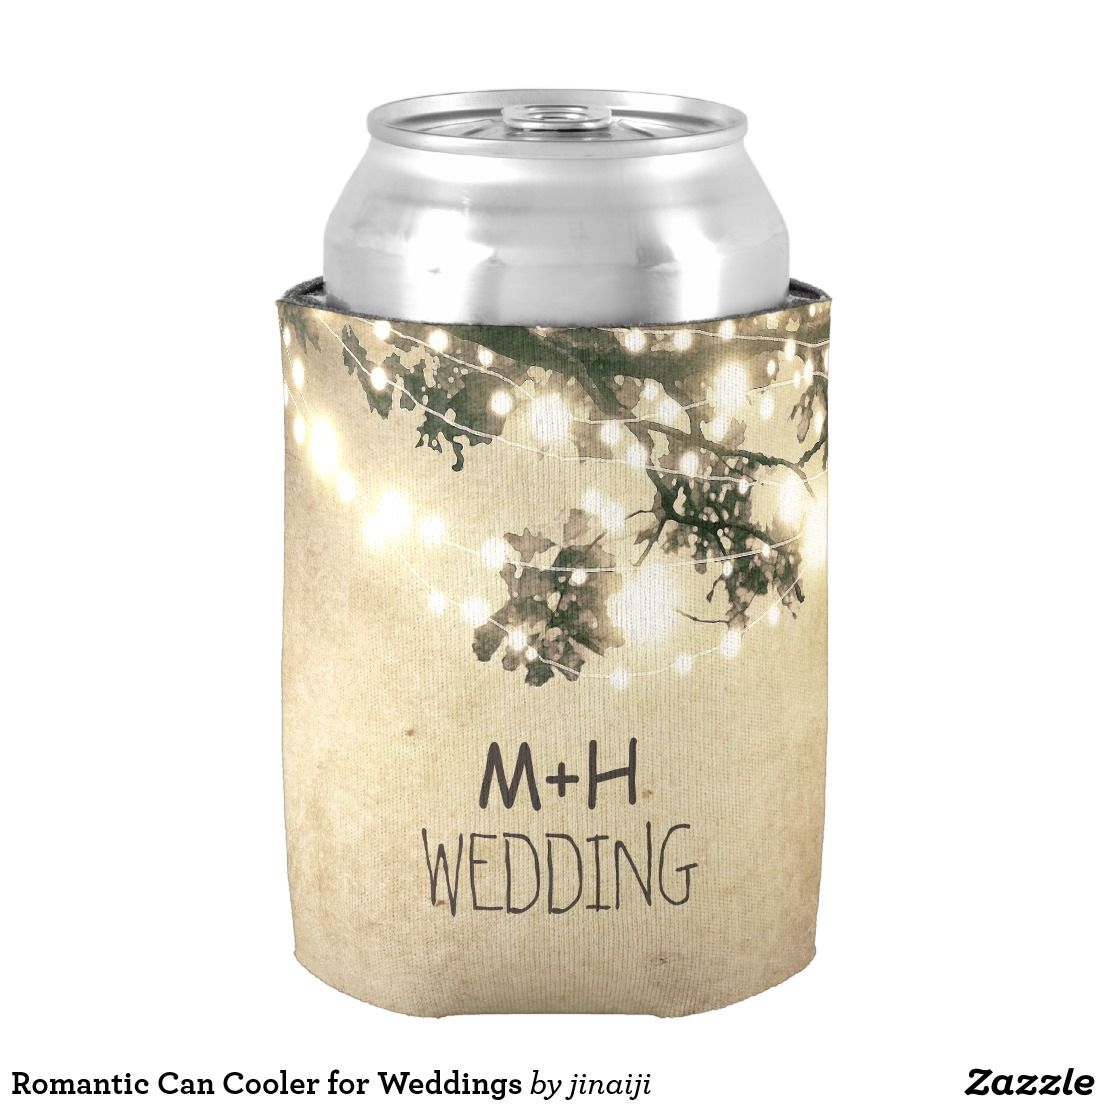 Romantic Can Cooler for Weddings | Wedding koozies, Favors and ...